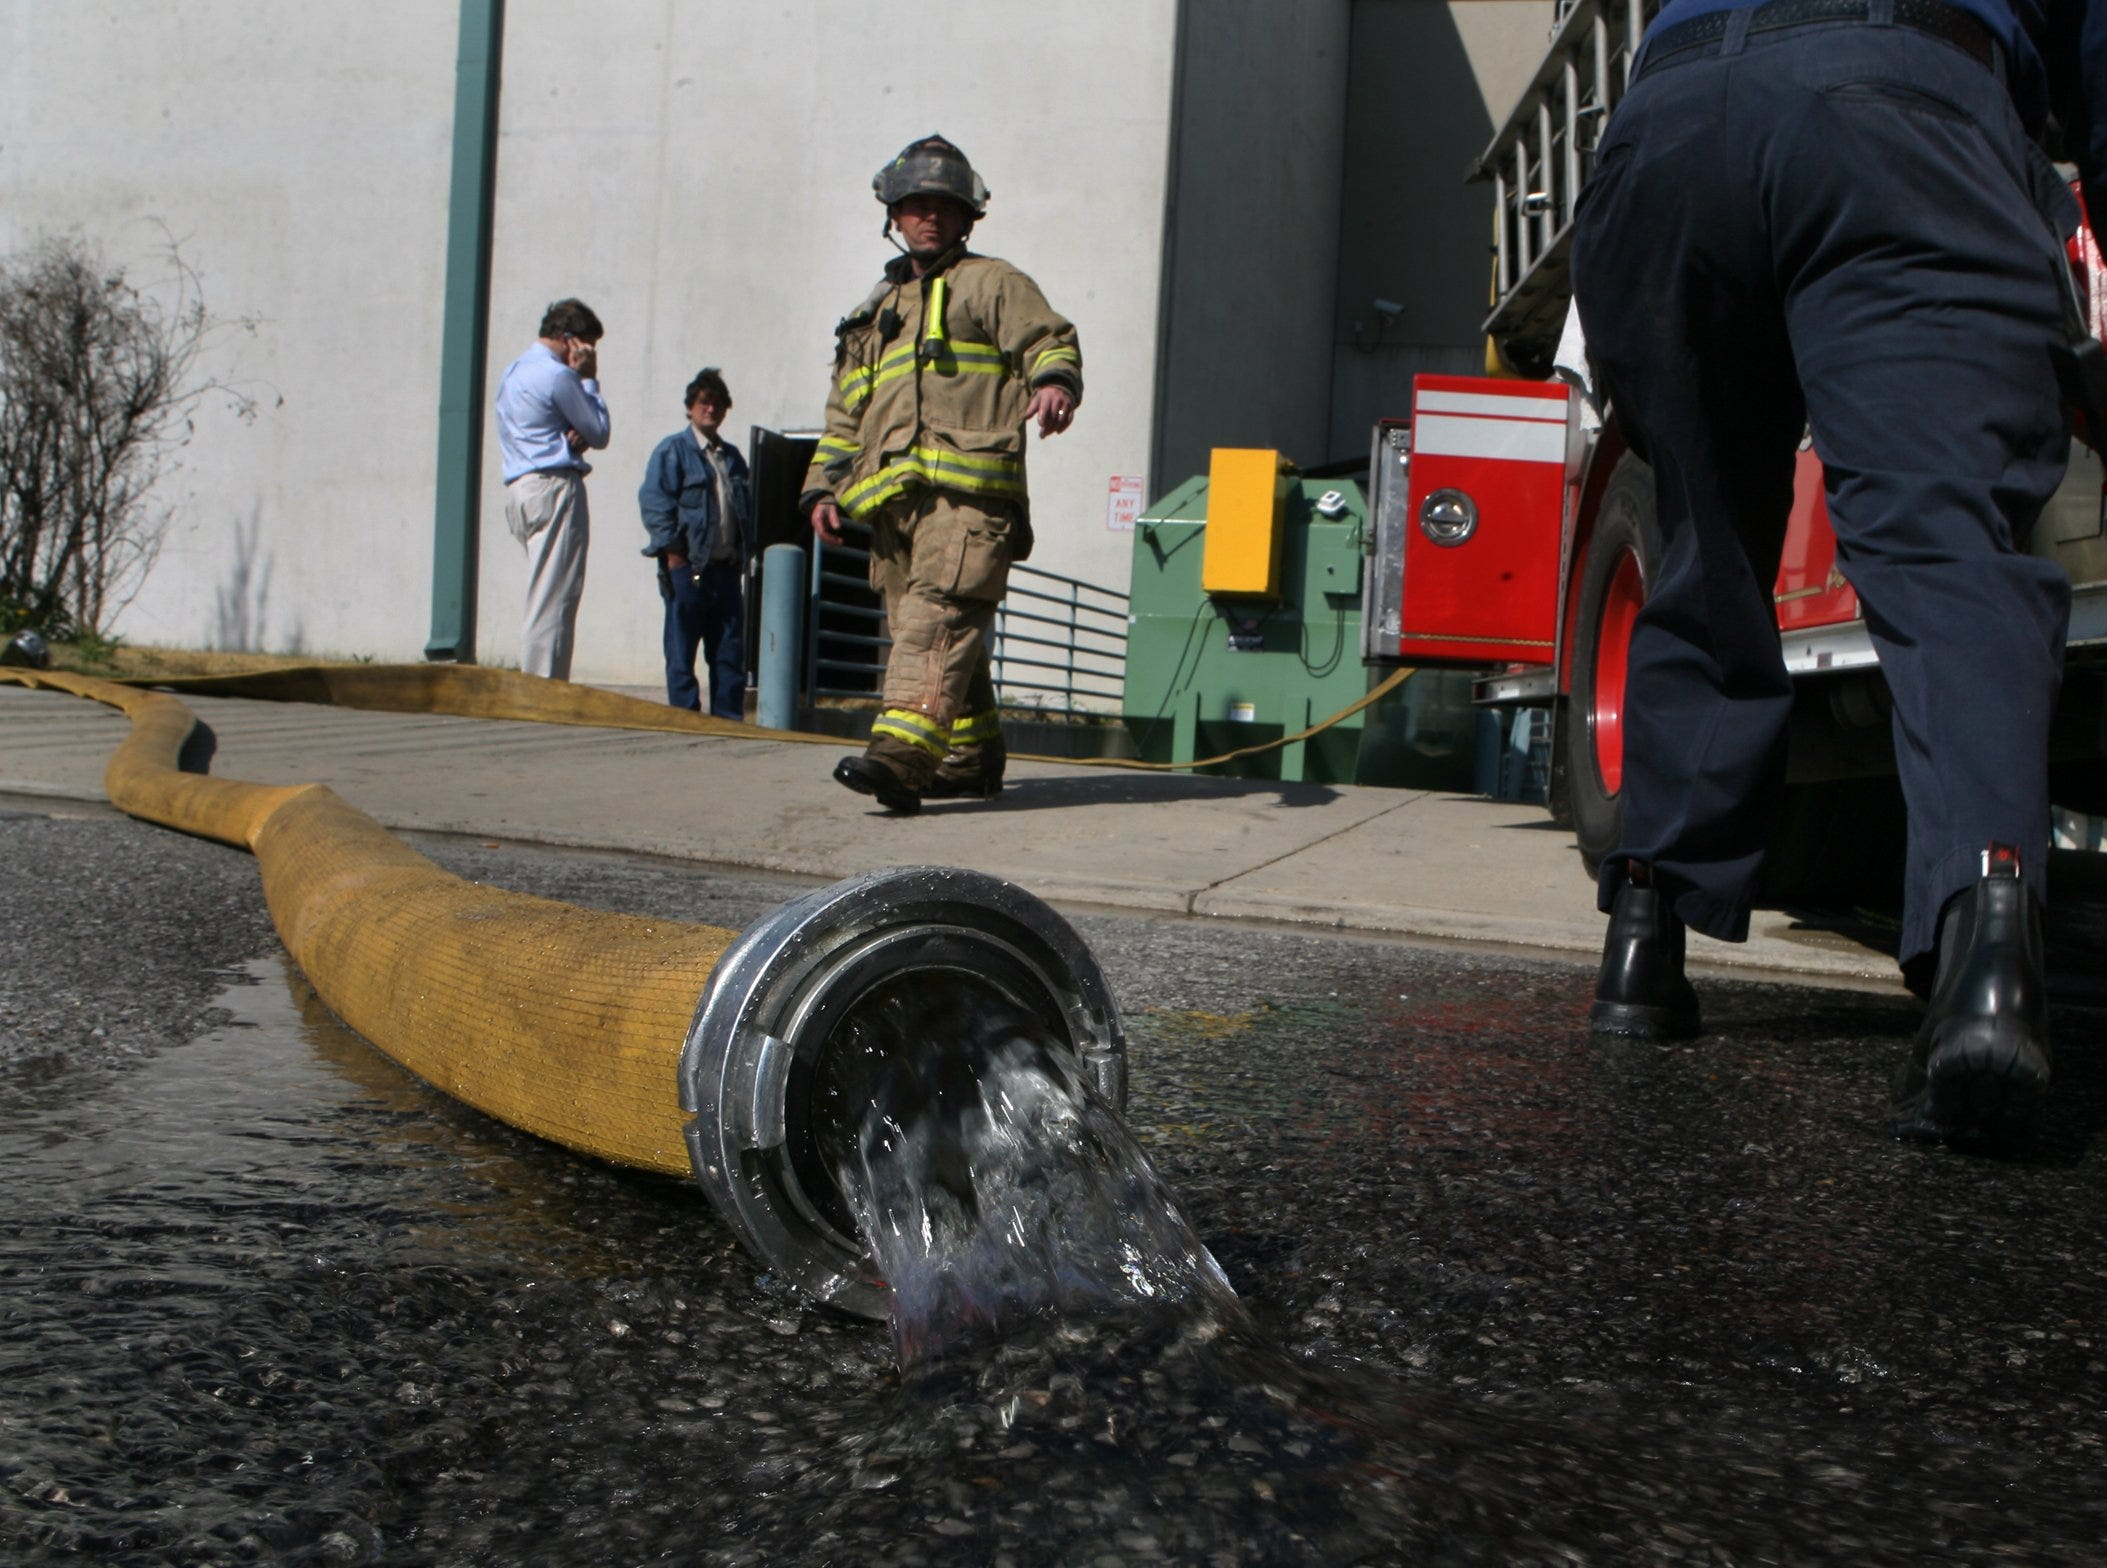 Mar. 16, 2007 - Firefighter Tony Burton, center, of Engine 2, responds to a fire that started in a dust collector at Gibson Guitar Factory in downtown Memphis.  Firefighters left the scene after putting the fire out and no one was hurt in the incident.